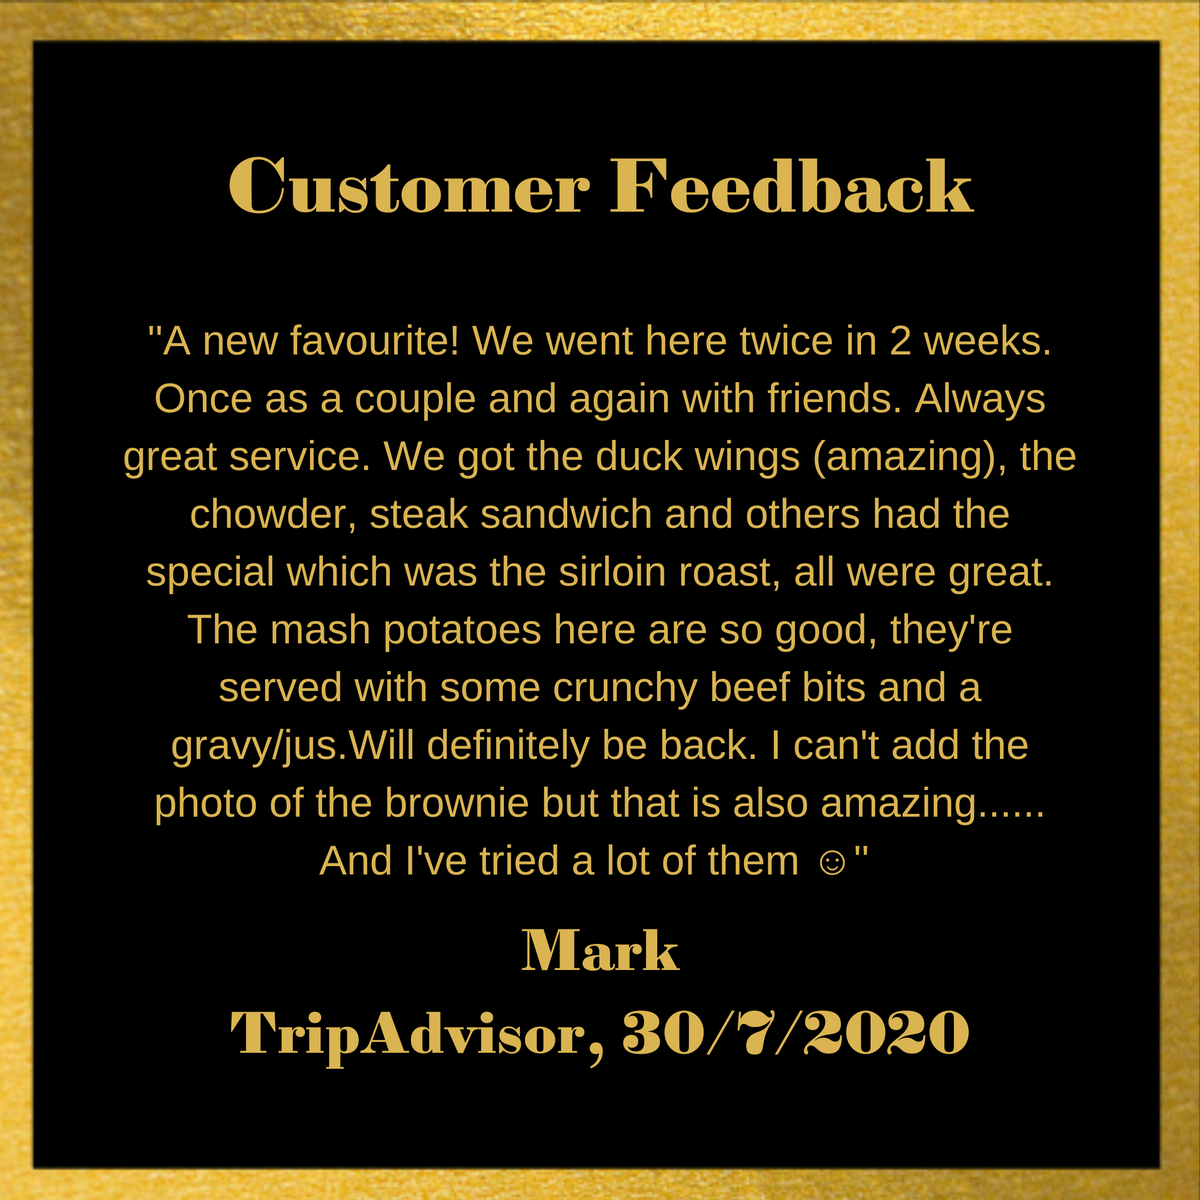 More incredible feedback here at Ribeye. Thank you to our customers and staff for being such legends! We love reading your reviews. https://www.ribeyesteakhouse.ie/ #tripadvisor #review #happycustomerpic.twitter.com/hVjoO9QiOW